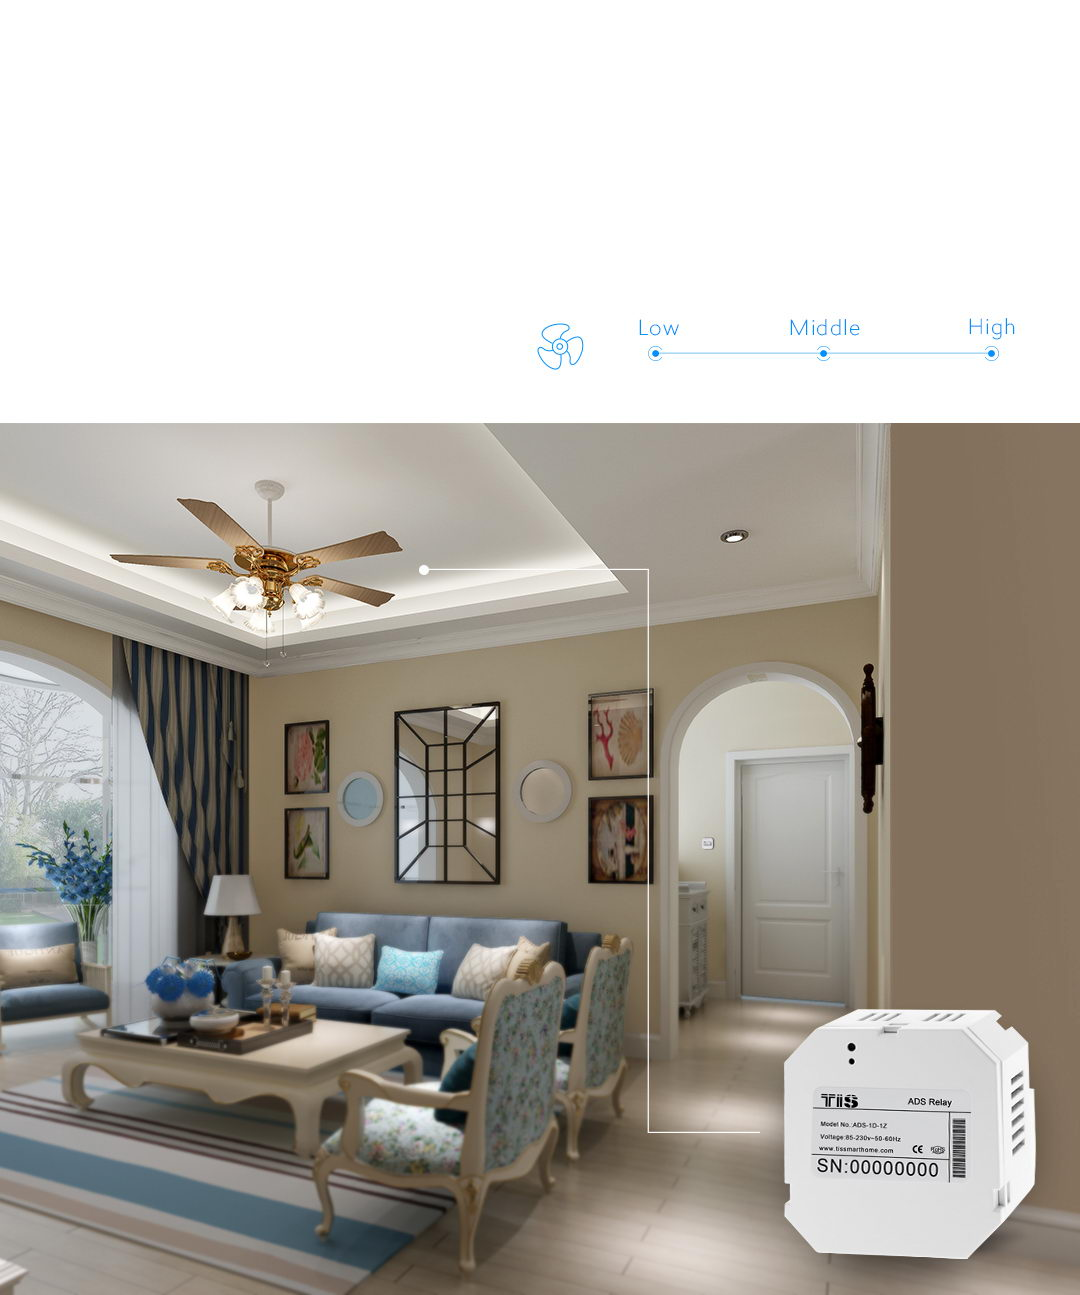 control your ceiling fan by a single press from apps – TIS